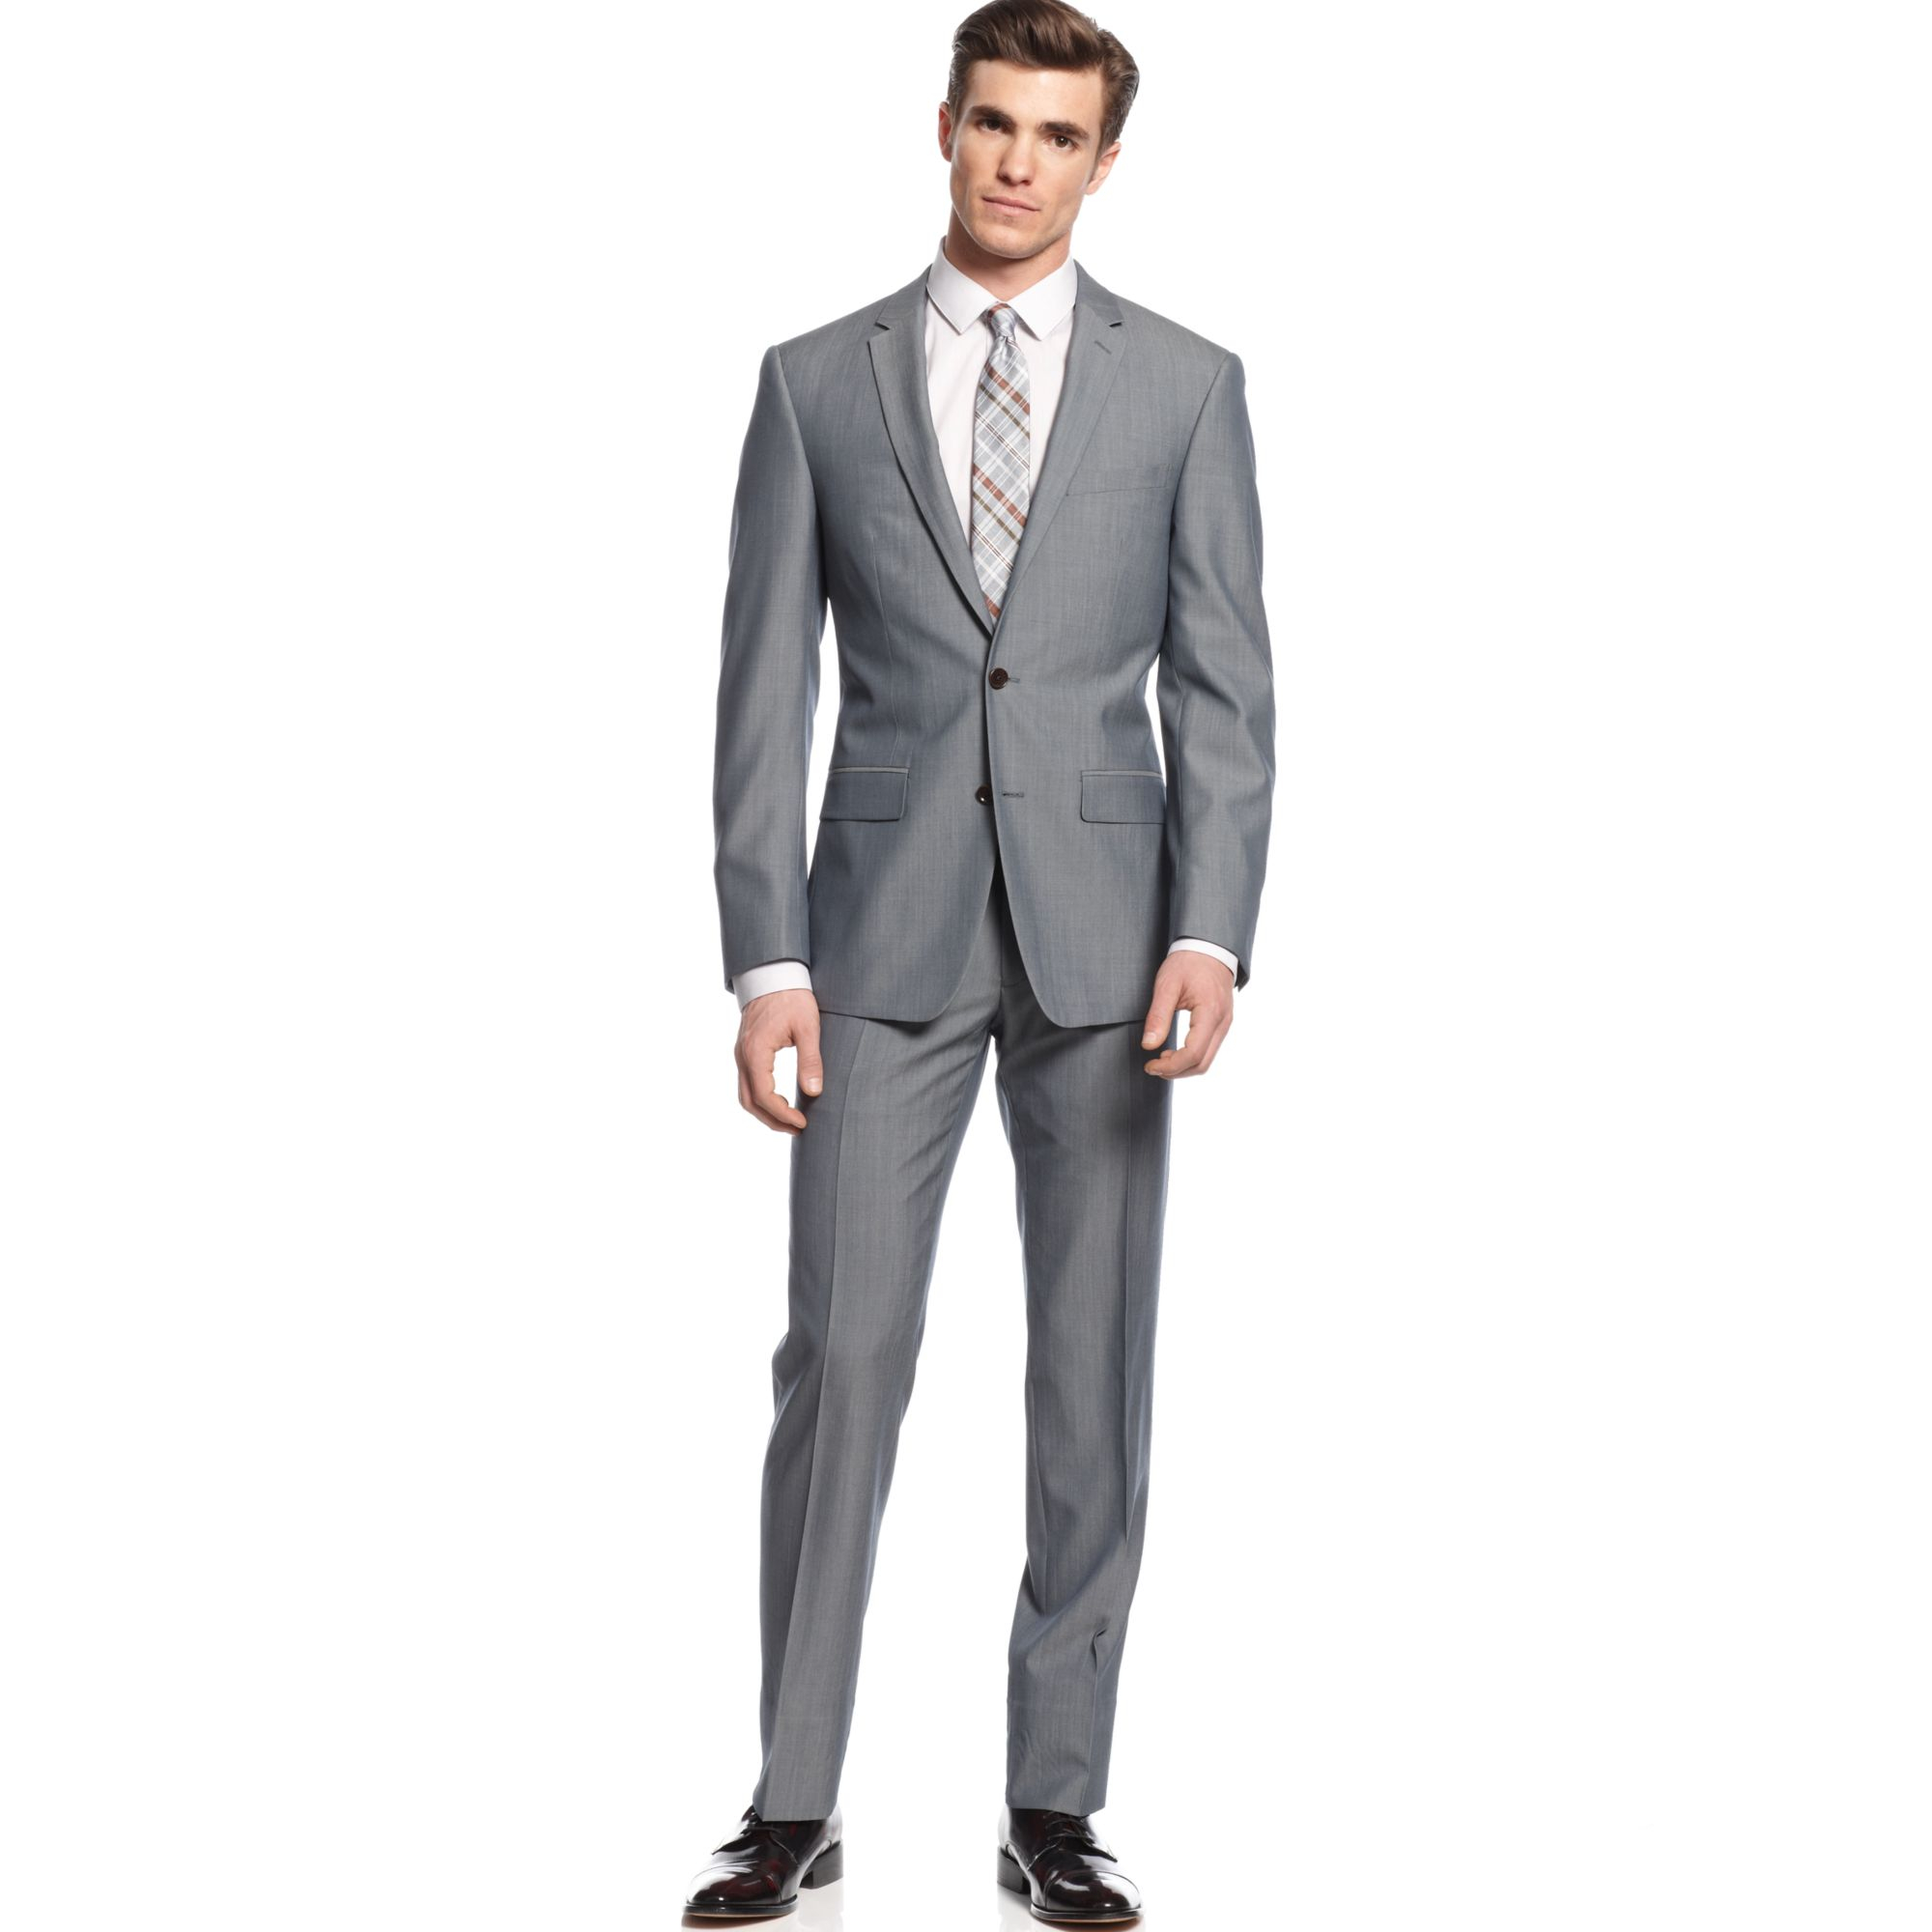 Slim-fit suits typically feature a tapered waist, slim and slightly tapered legs, and a narrower point-to-point shoulder comfoisinsi.tk style is especially flattering on men with a slim build but can give anyone a modern, trimmed-down silhouette. Men's slim-fit suit pants feature a lower rise than traditional suit pants and have a slightly shorter length.